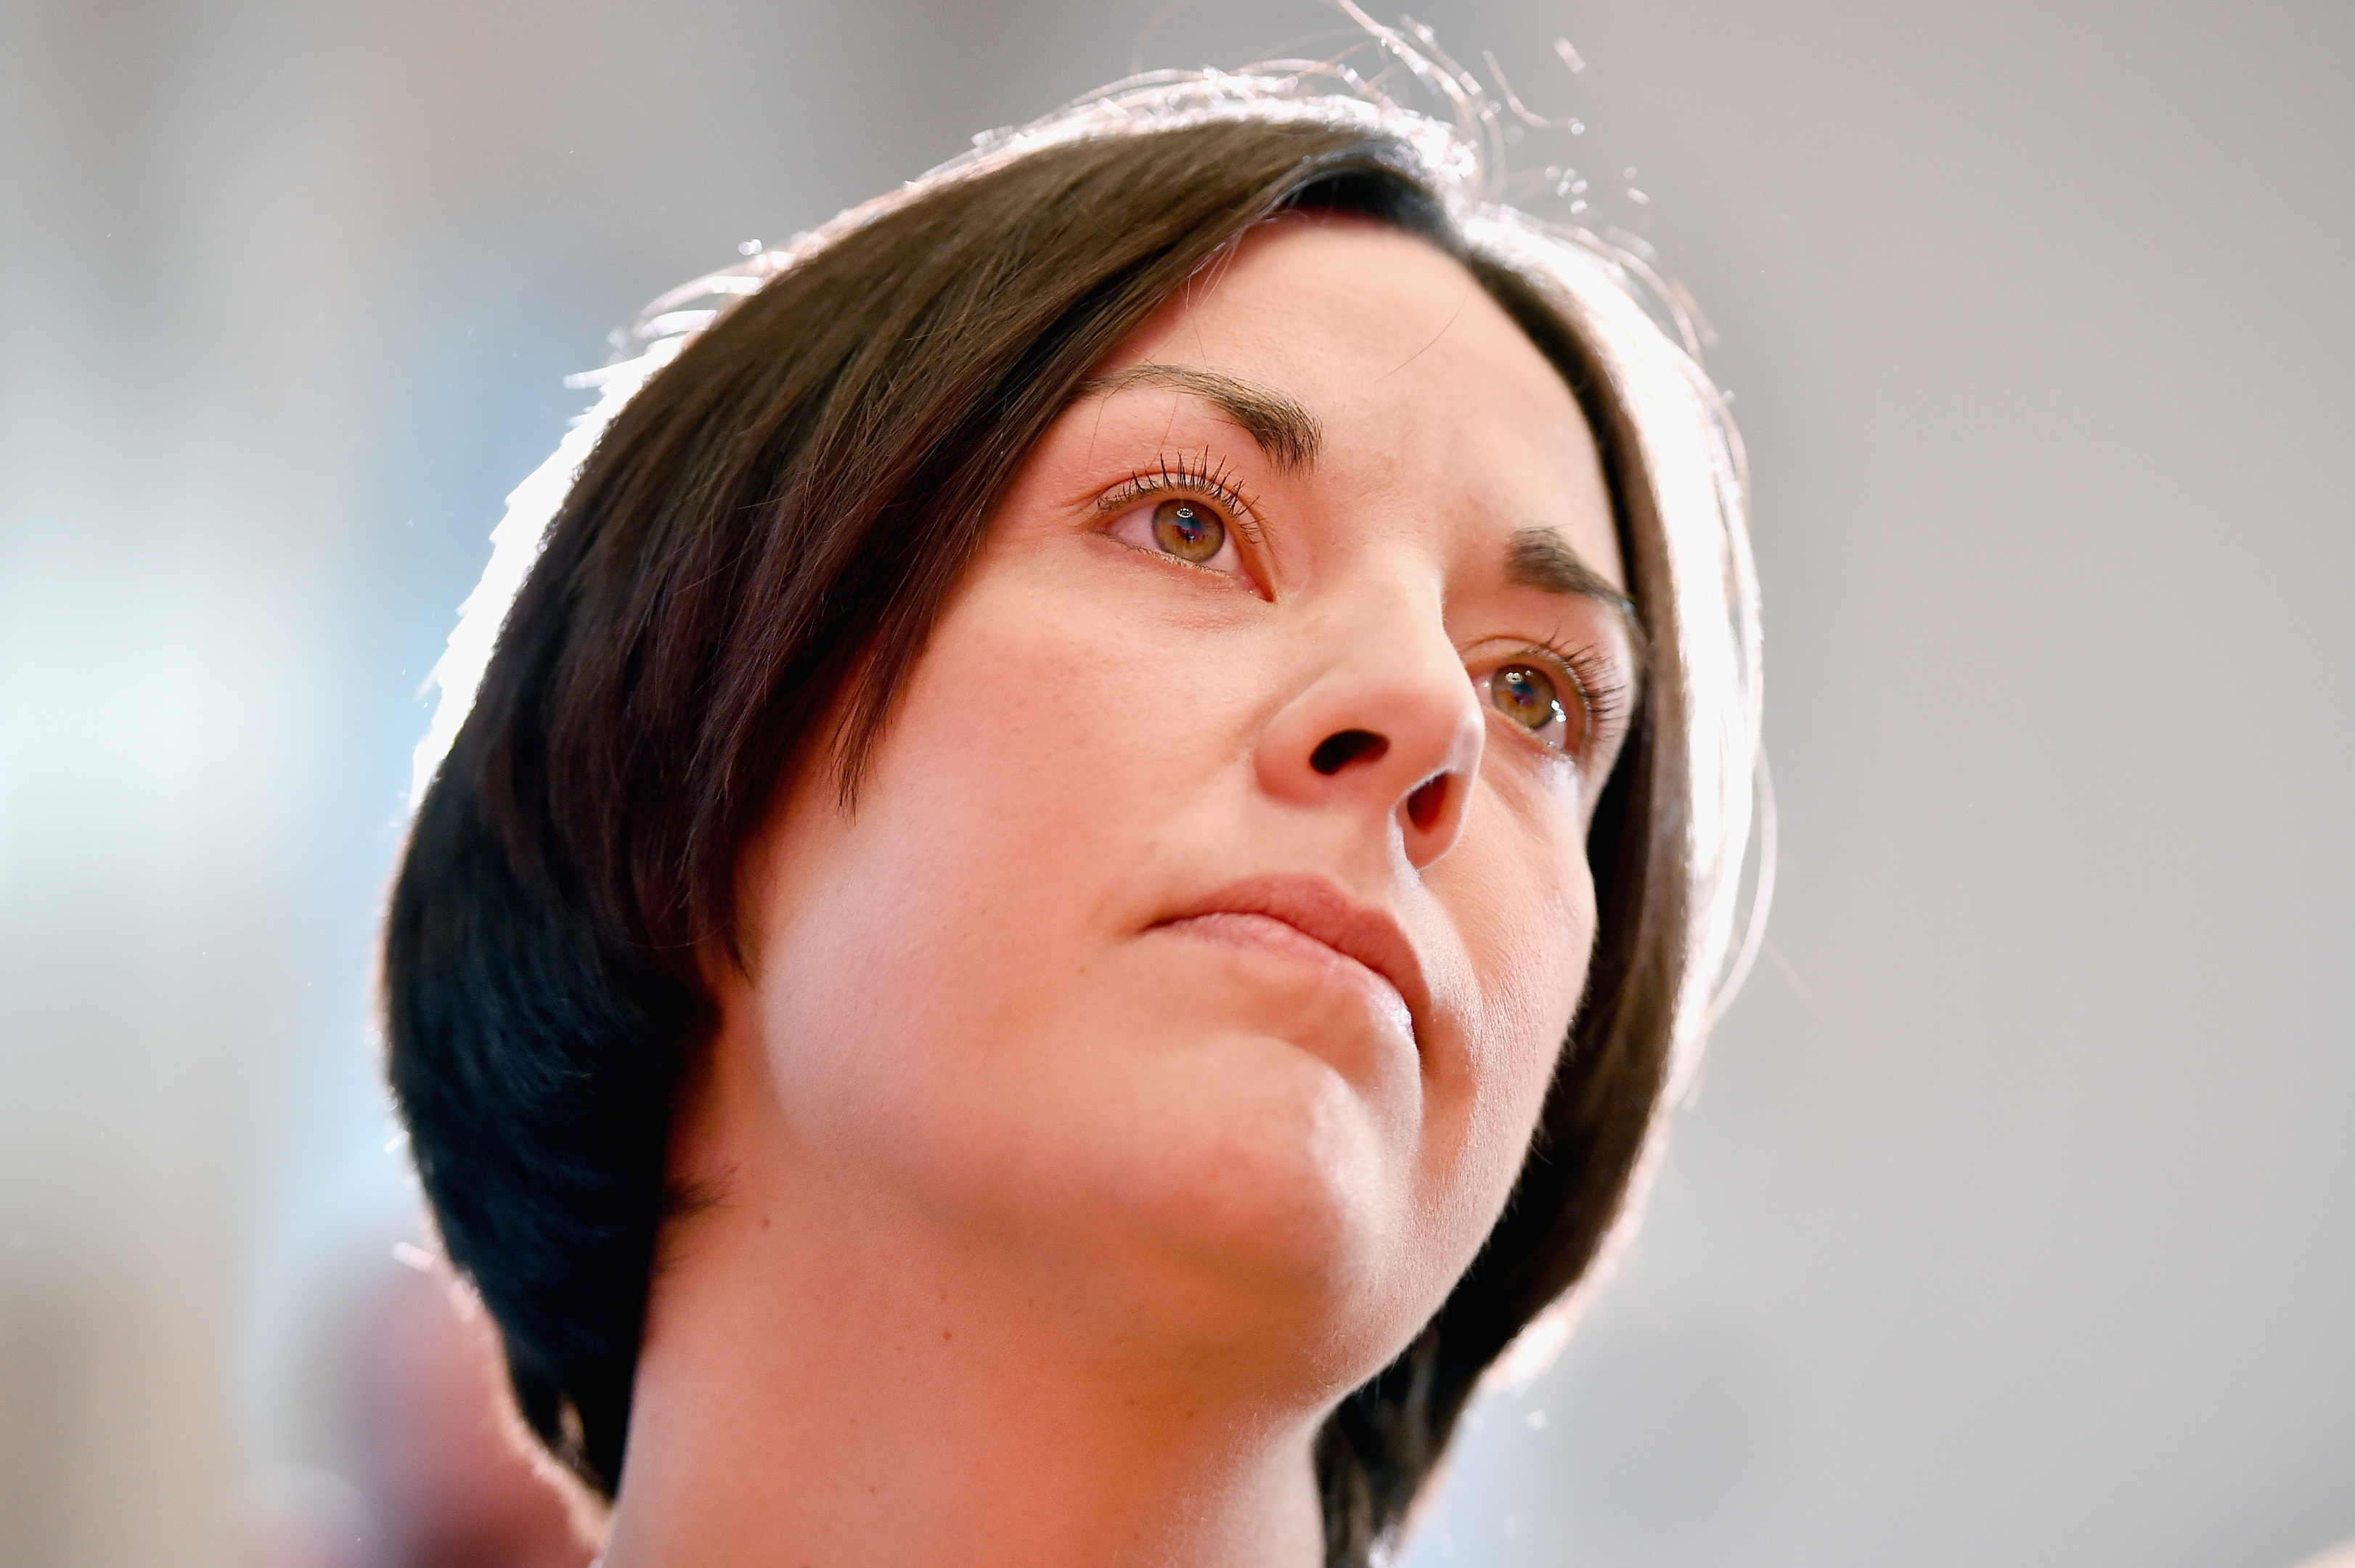 The poll shows Scottish Labour leader Kezia Dugdale's popularity has plummeted.